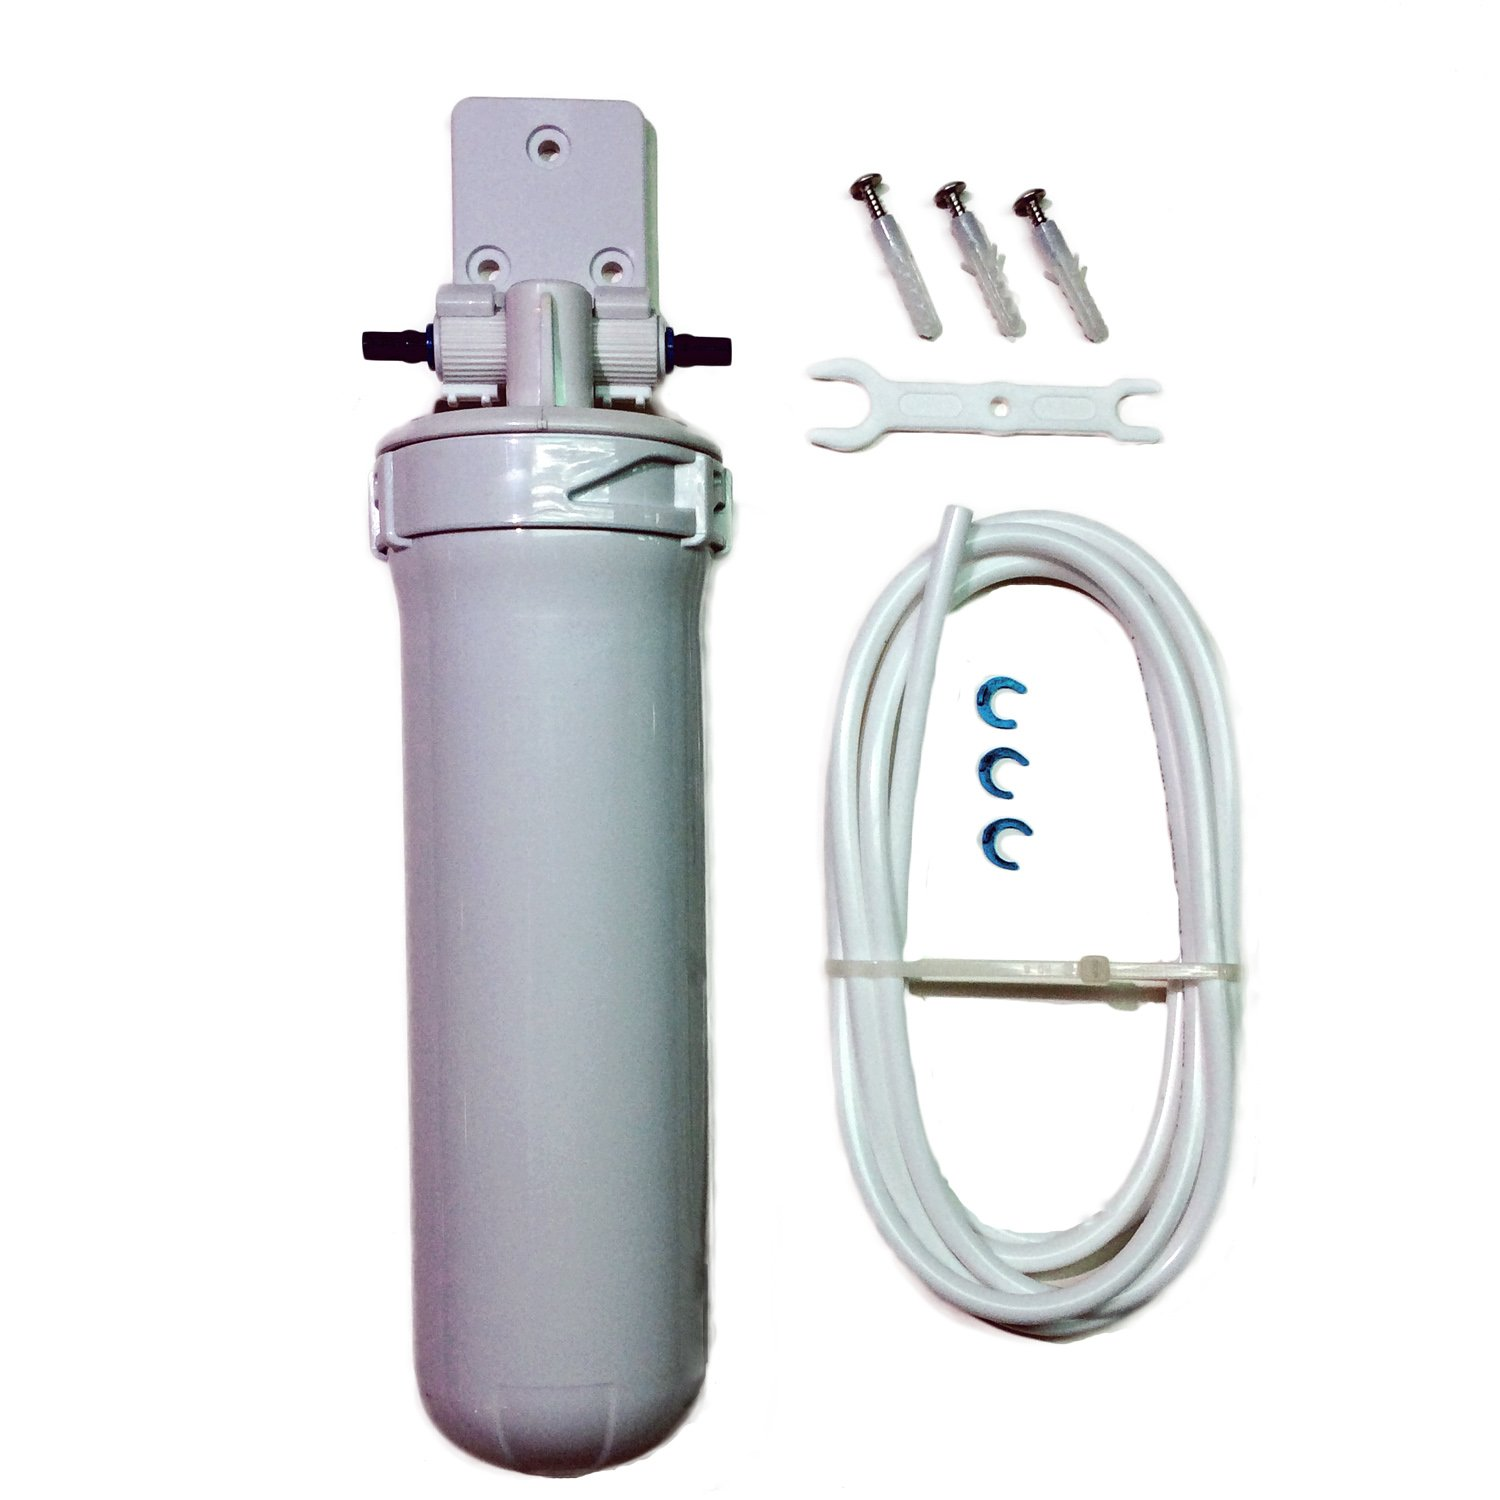 Aquatic Life 50 Micron Sediment Pre Filter W Stainless Nano 10in 5 Mikron Steel Rinseable Mesh Screen 1 4 Press Fittings Pet Supplies